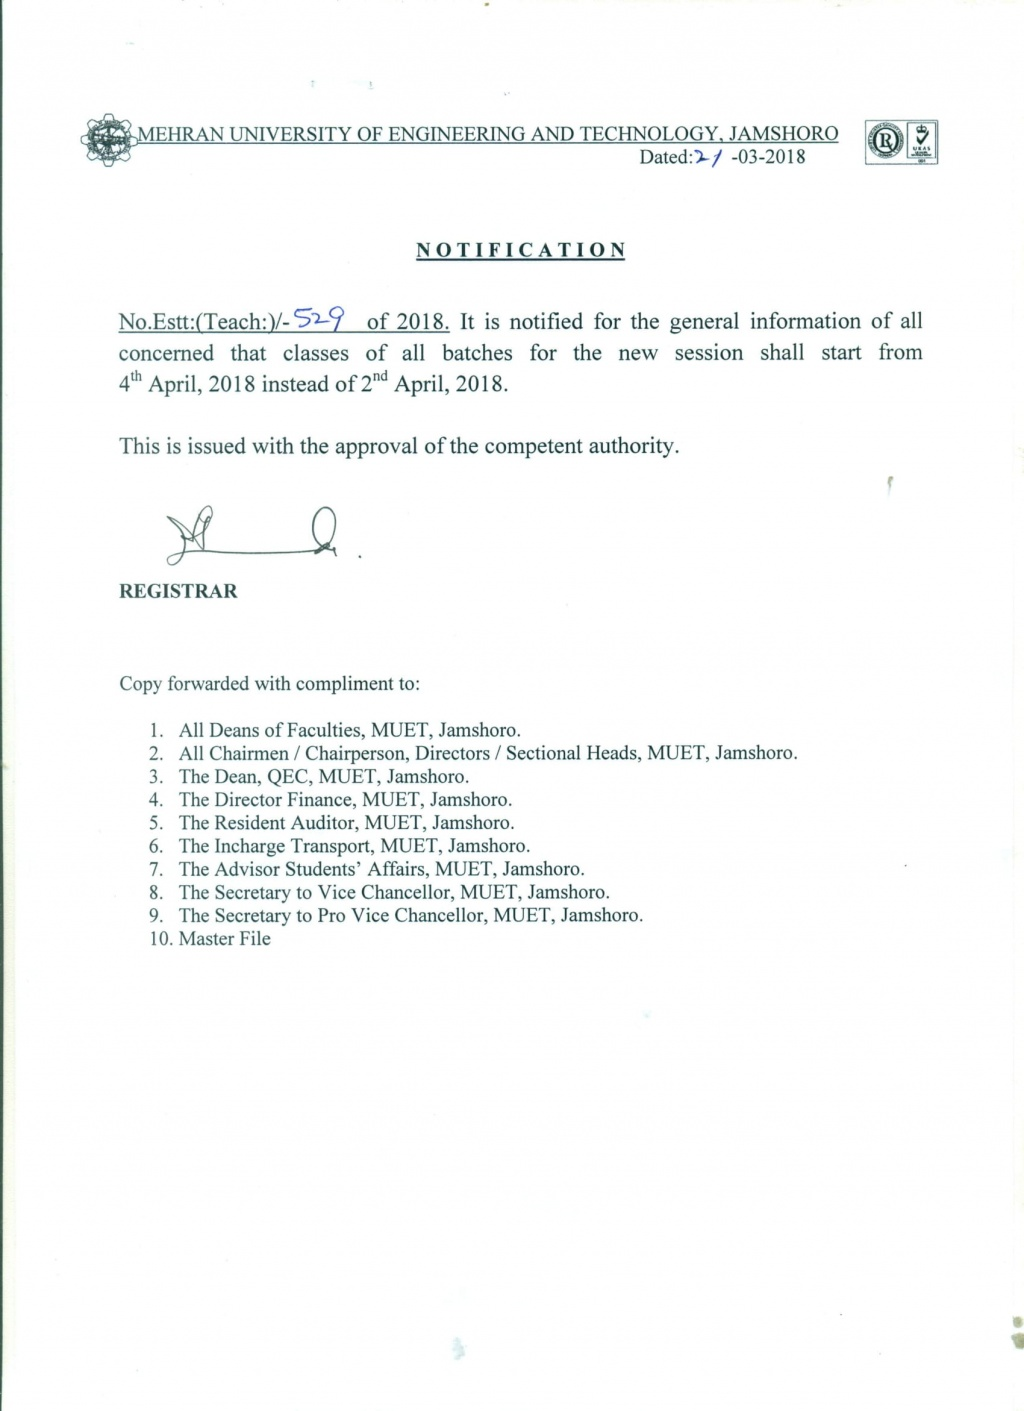 Notification for classes of all batches for new session